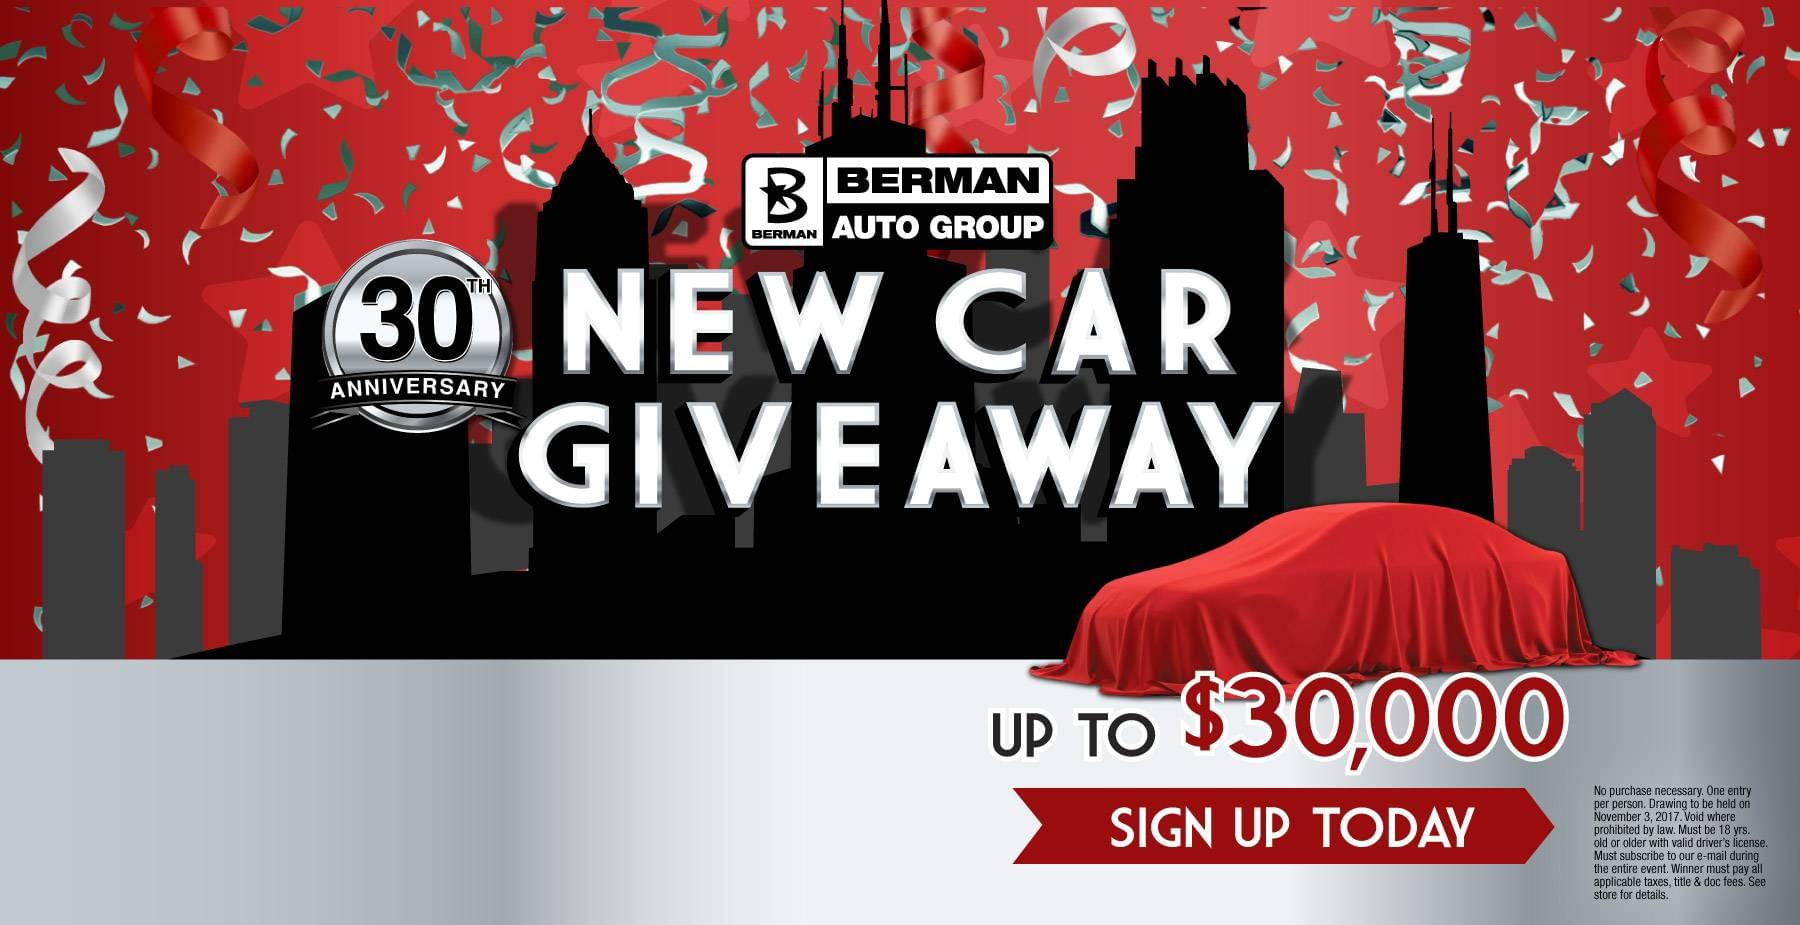 New Car Giveaway